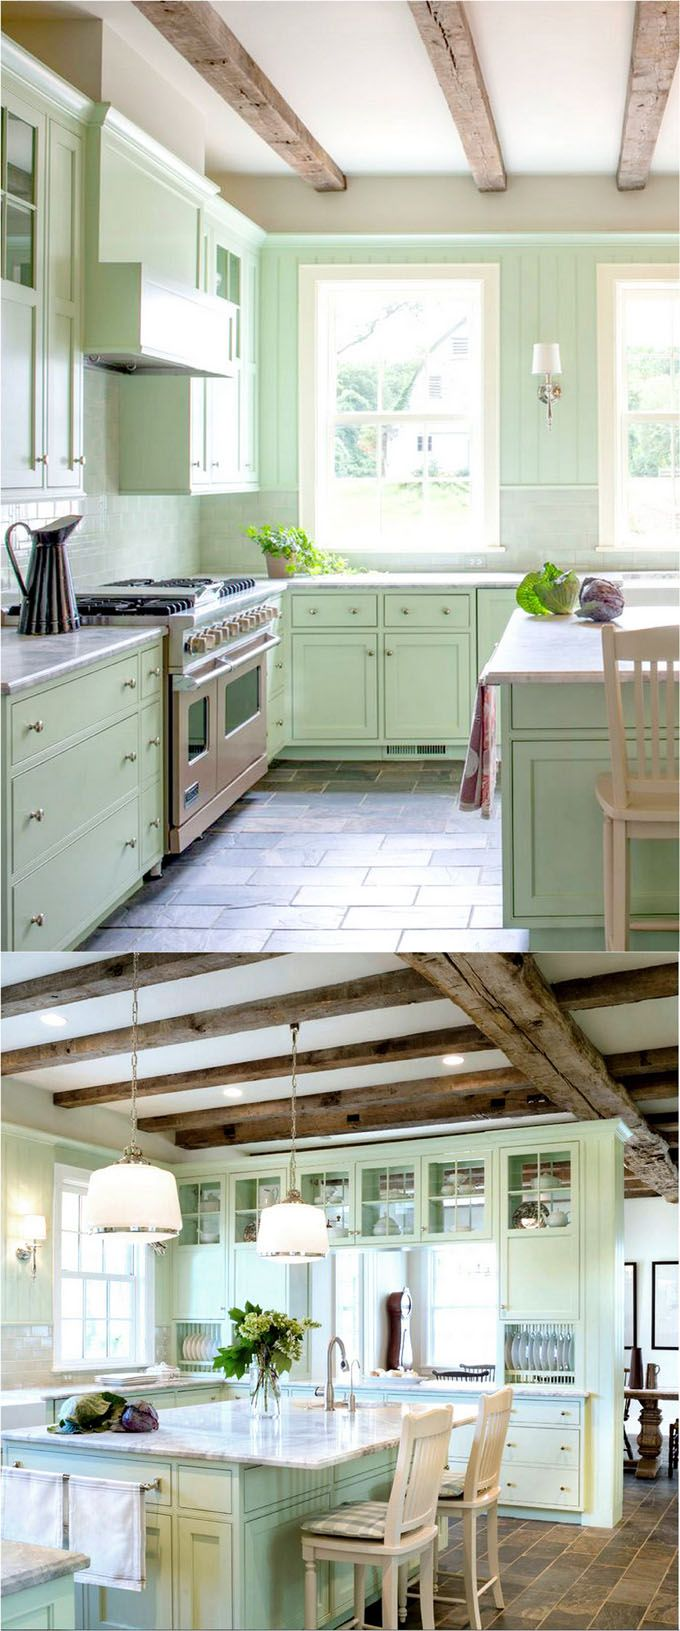 25 Gorgeous Paint Colors for Kitchen Cabinets (and beyond ...